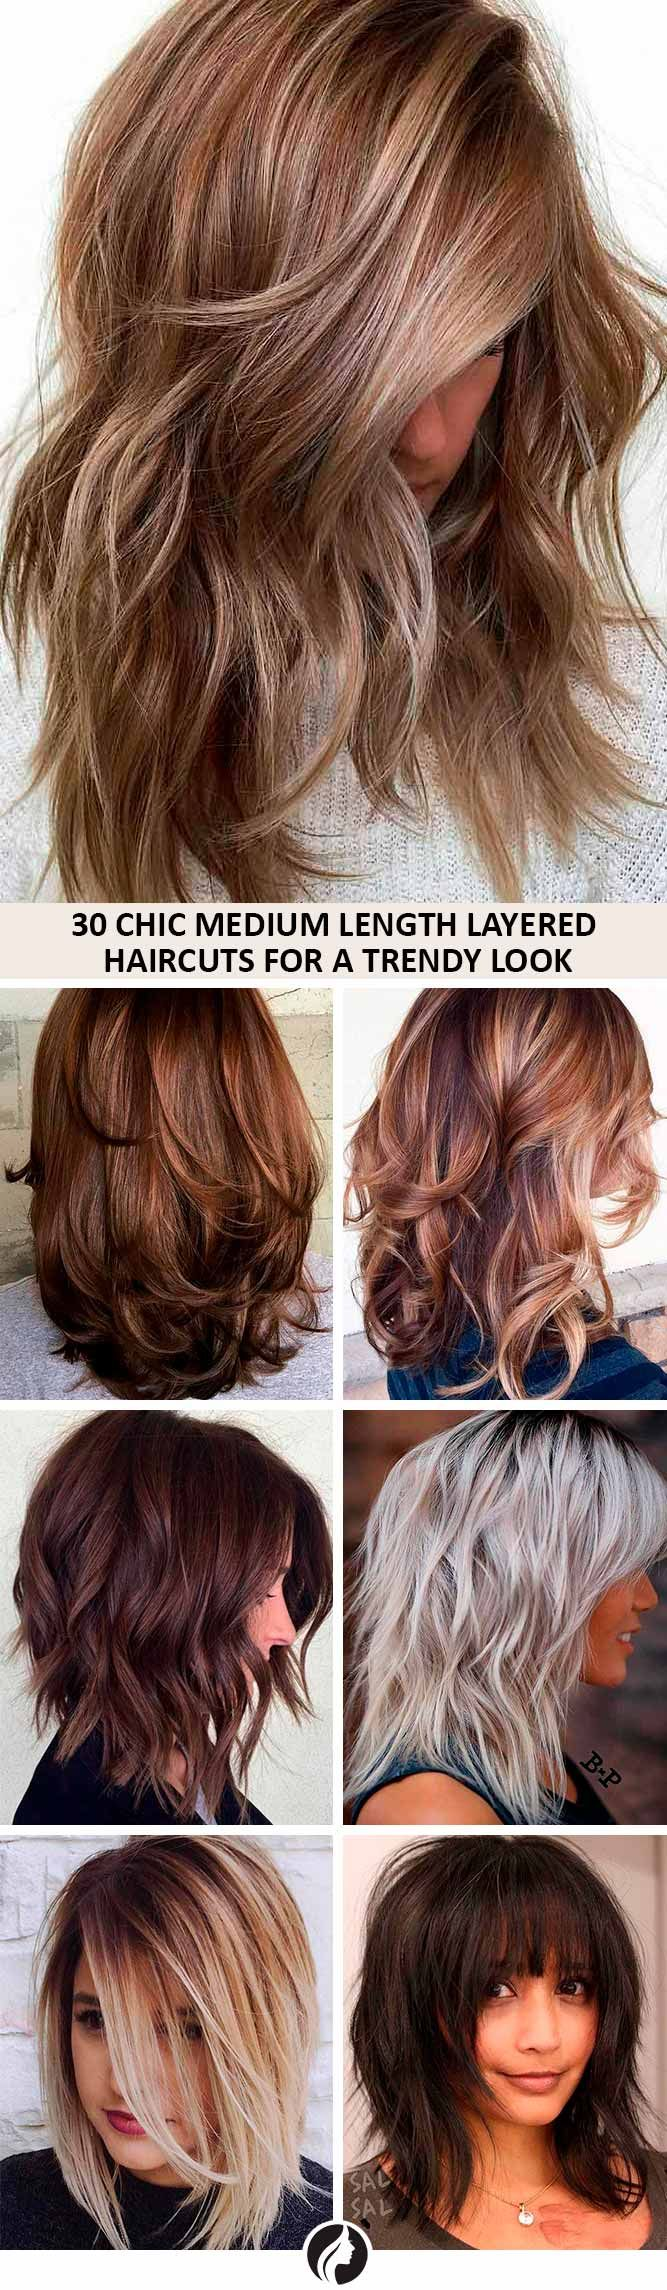 Medium length layered haircuts are a superb